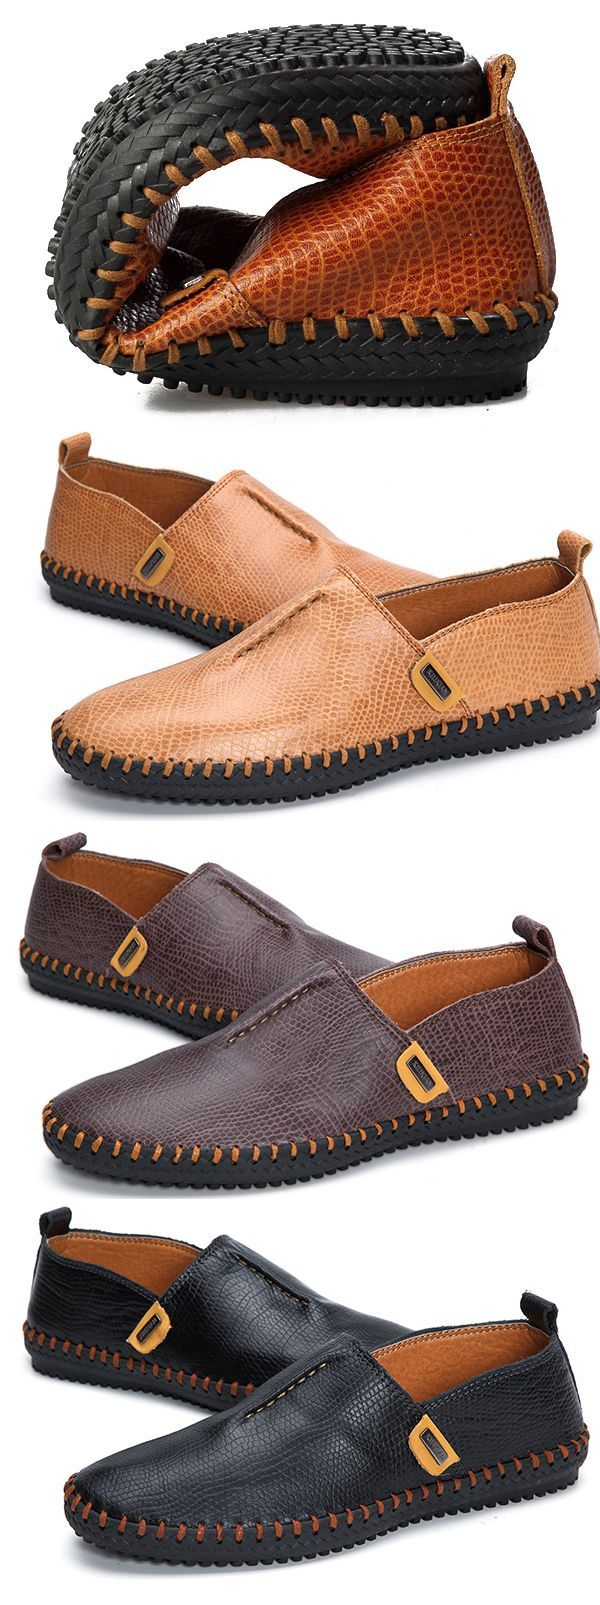 US$45.53 + Free shipping. Casual Shoes, Casual Shoes for Men, Soft Shoes, Flat Shoes, Oxfords Shoes, Shoes to Wear with Jeans, shoes with shorts.Season: Spring, Summer, Round Toe, Slip on, Color: Black, Brown, Dark Brown. Upper Material: Cow Split Leather. Outsole Material: Rubber.